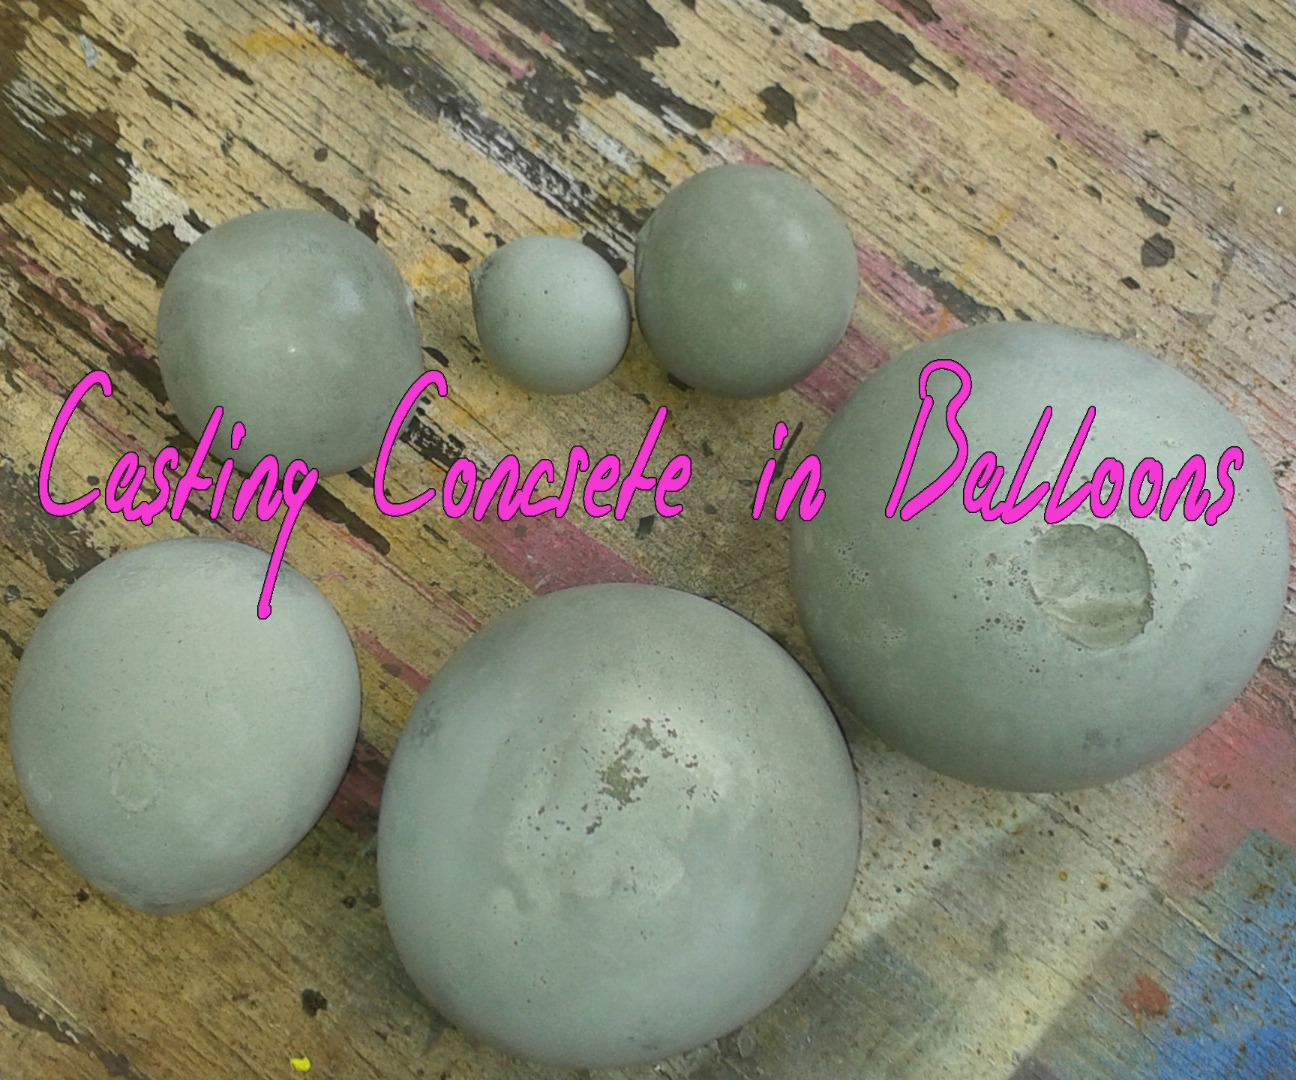 Picture of Casting Concrete in Balloons